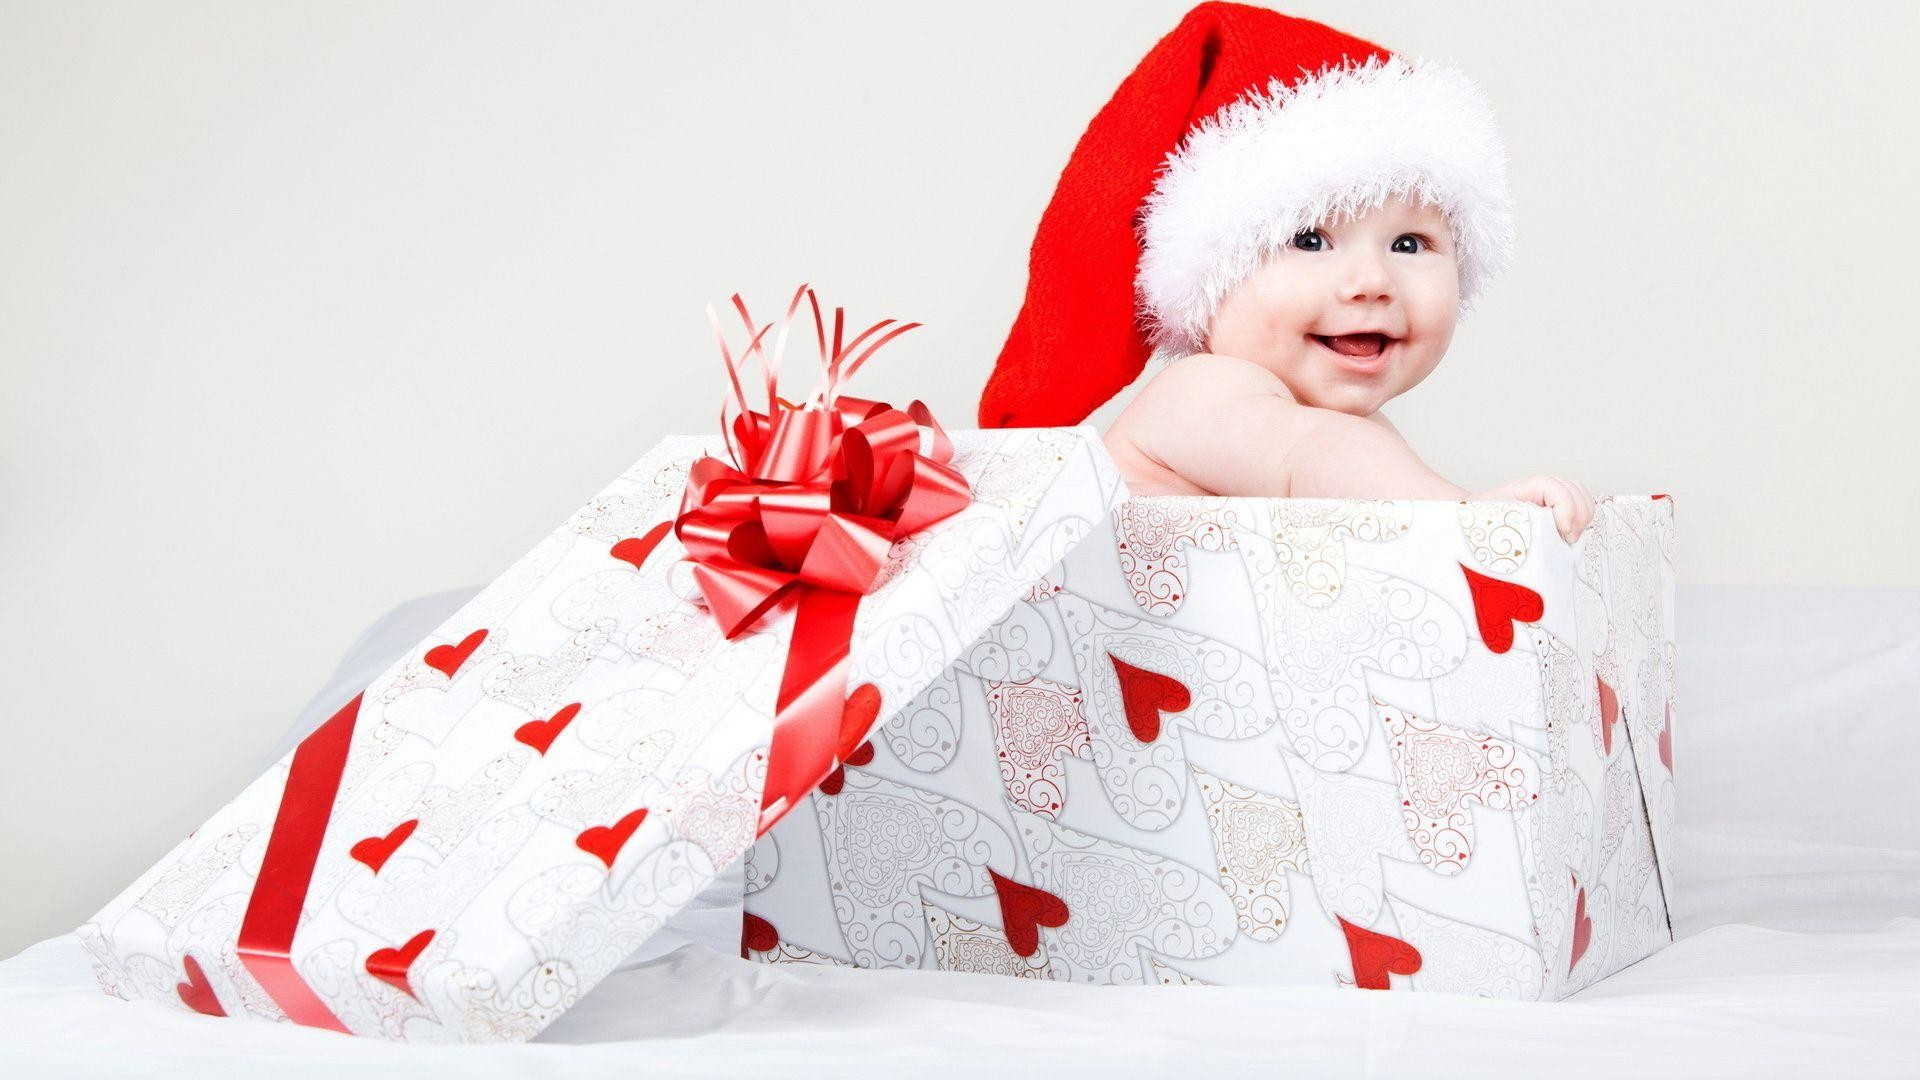 Res: 1920x1080, cute-baby-wallpapers-new-3 | pubzday